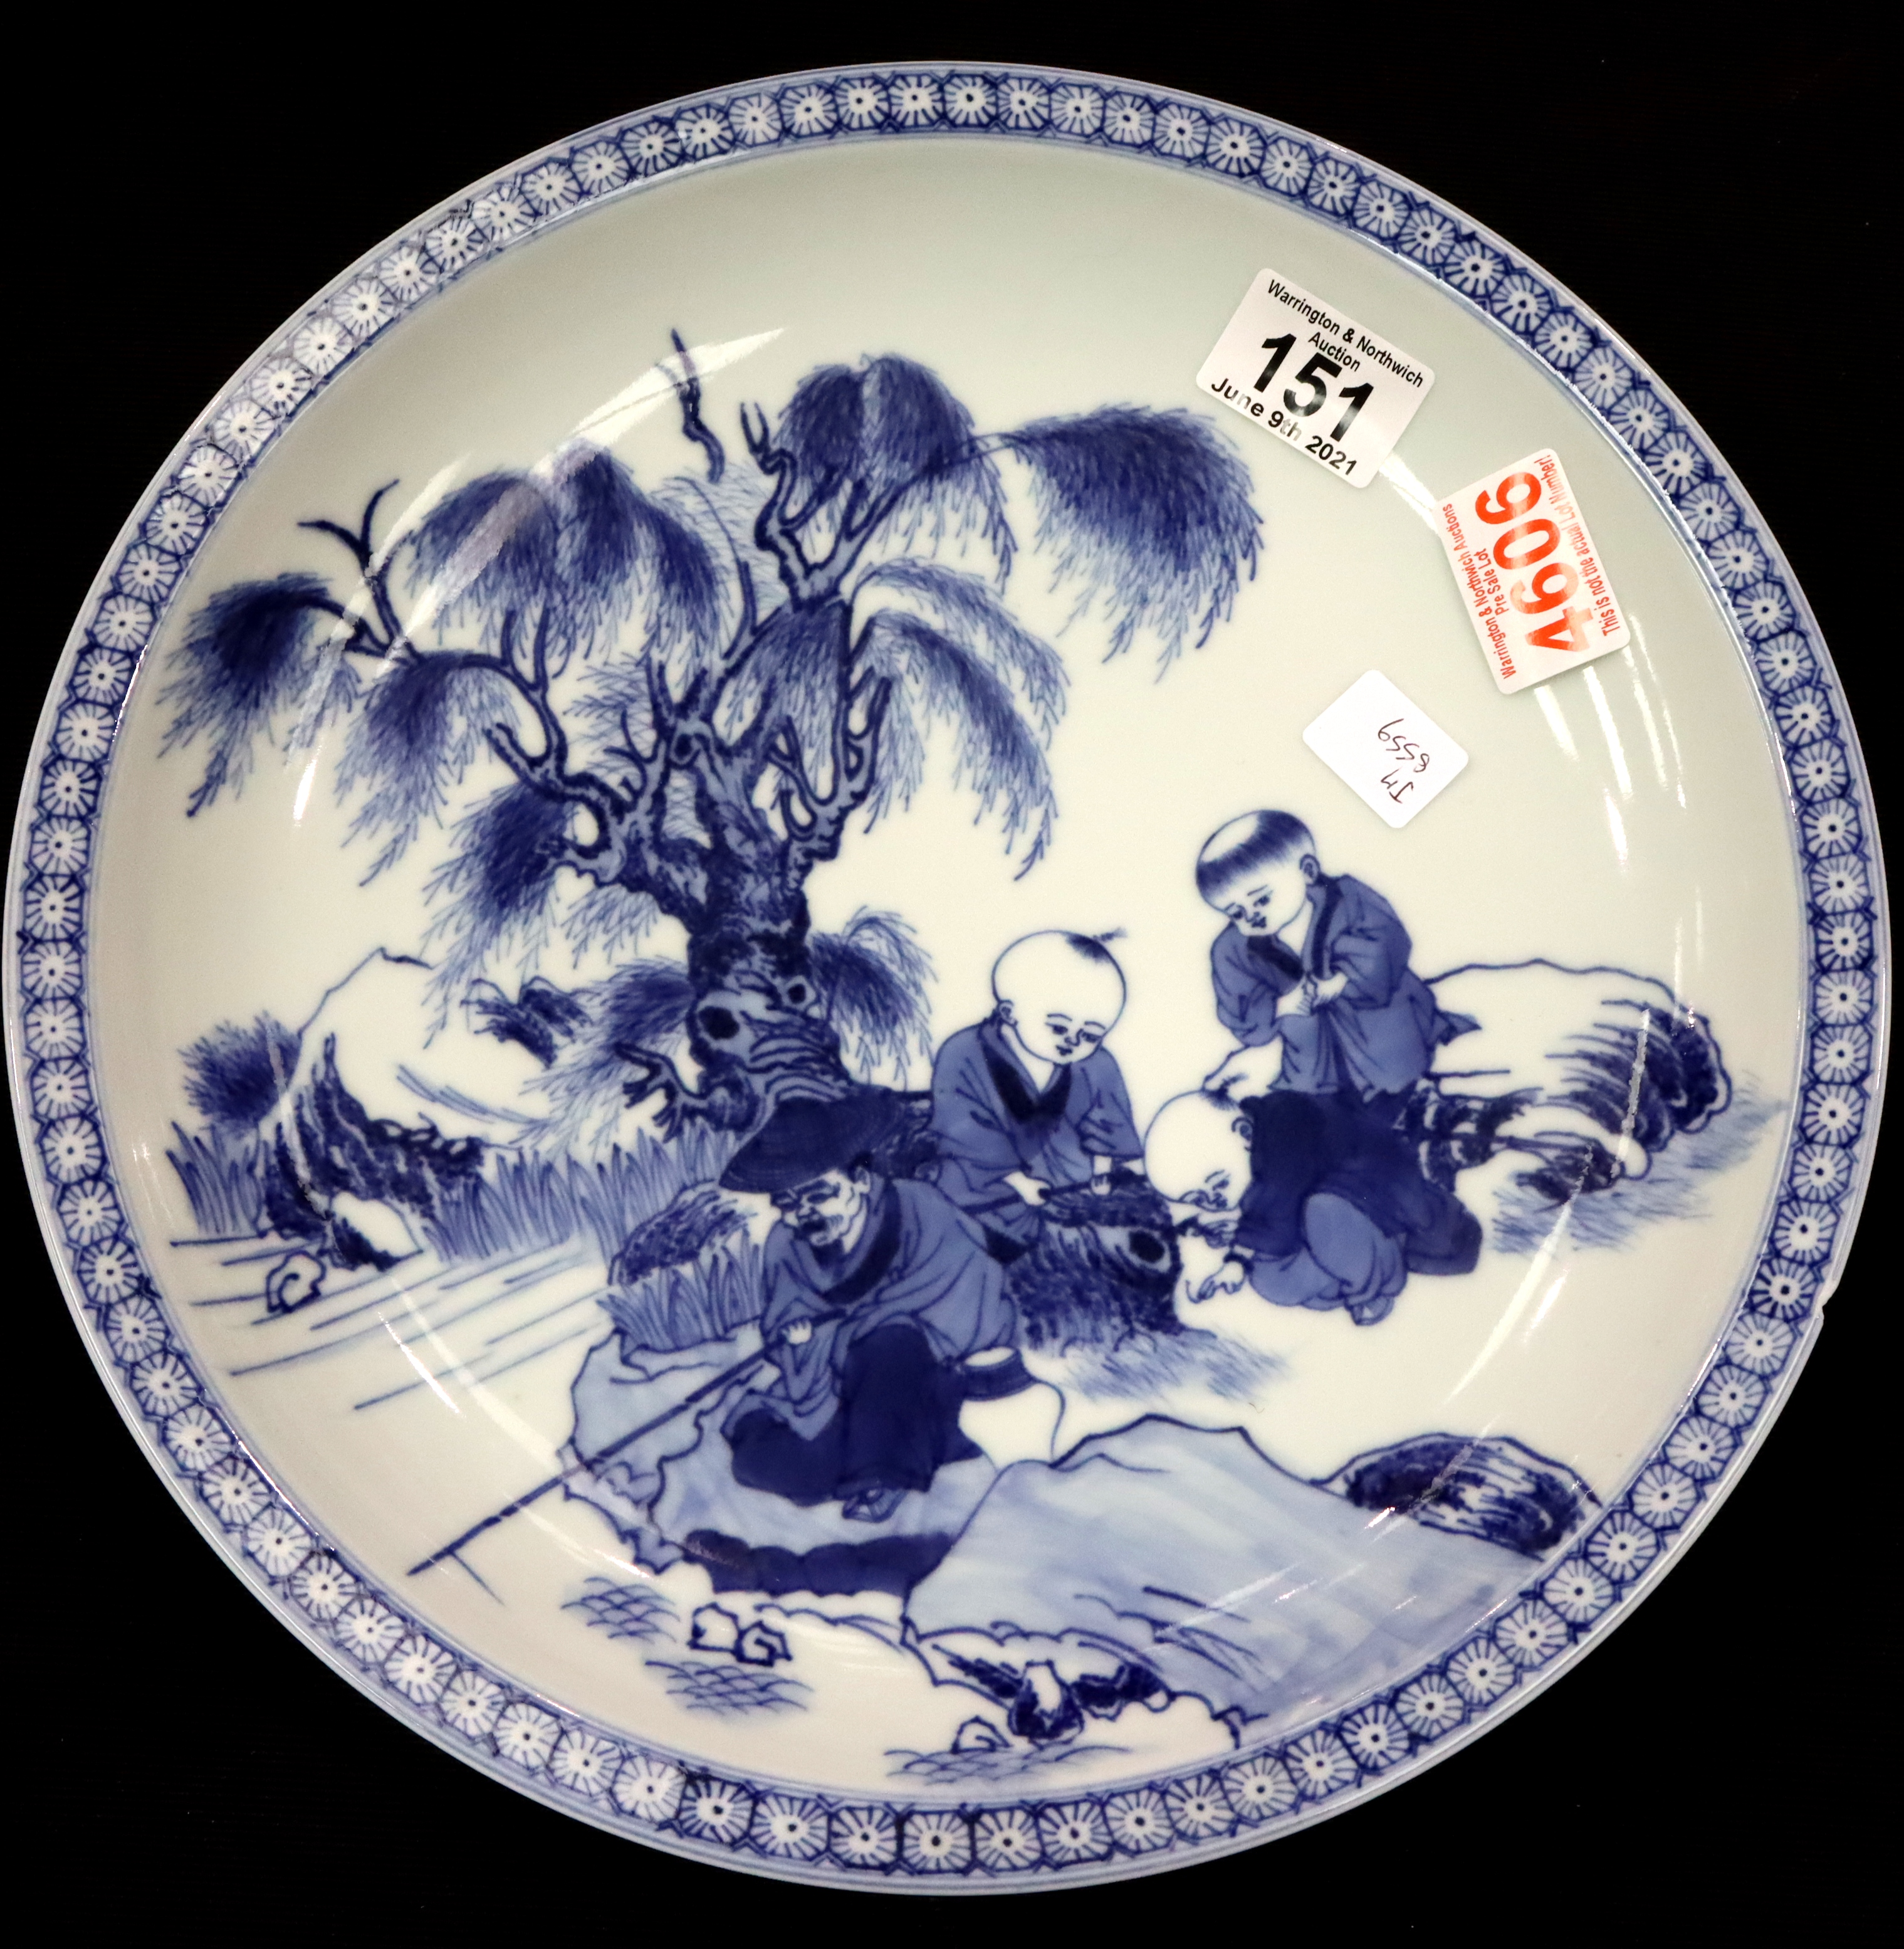 Chinese blue and white hand painted bowl. P&P Group 3 (£25+VAT for the first lot and £5+VAT for